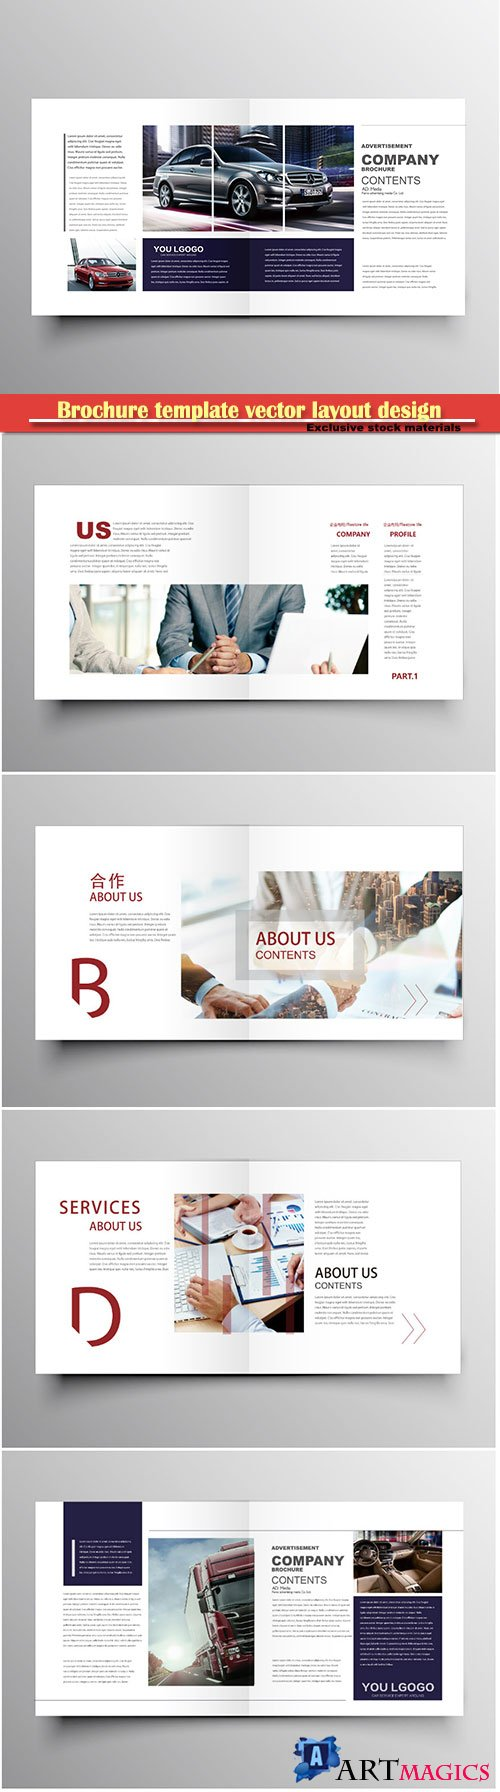 Brochure template vector layout design, corporate business annual report, magazine, flyer mockup # 180